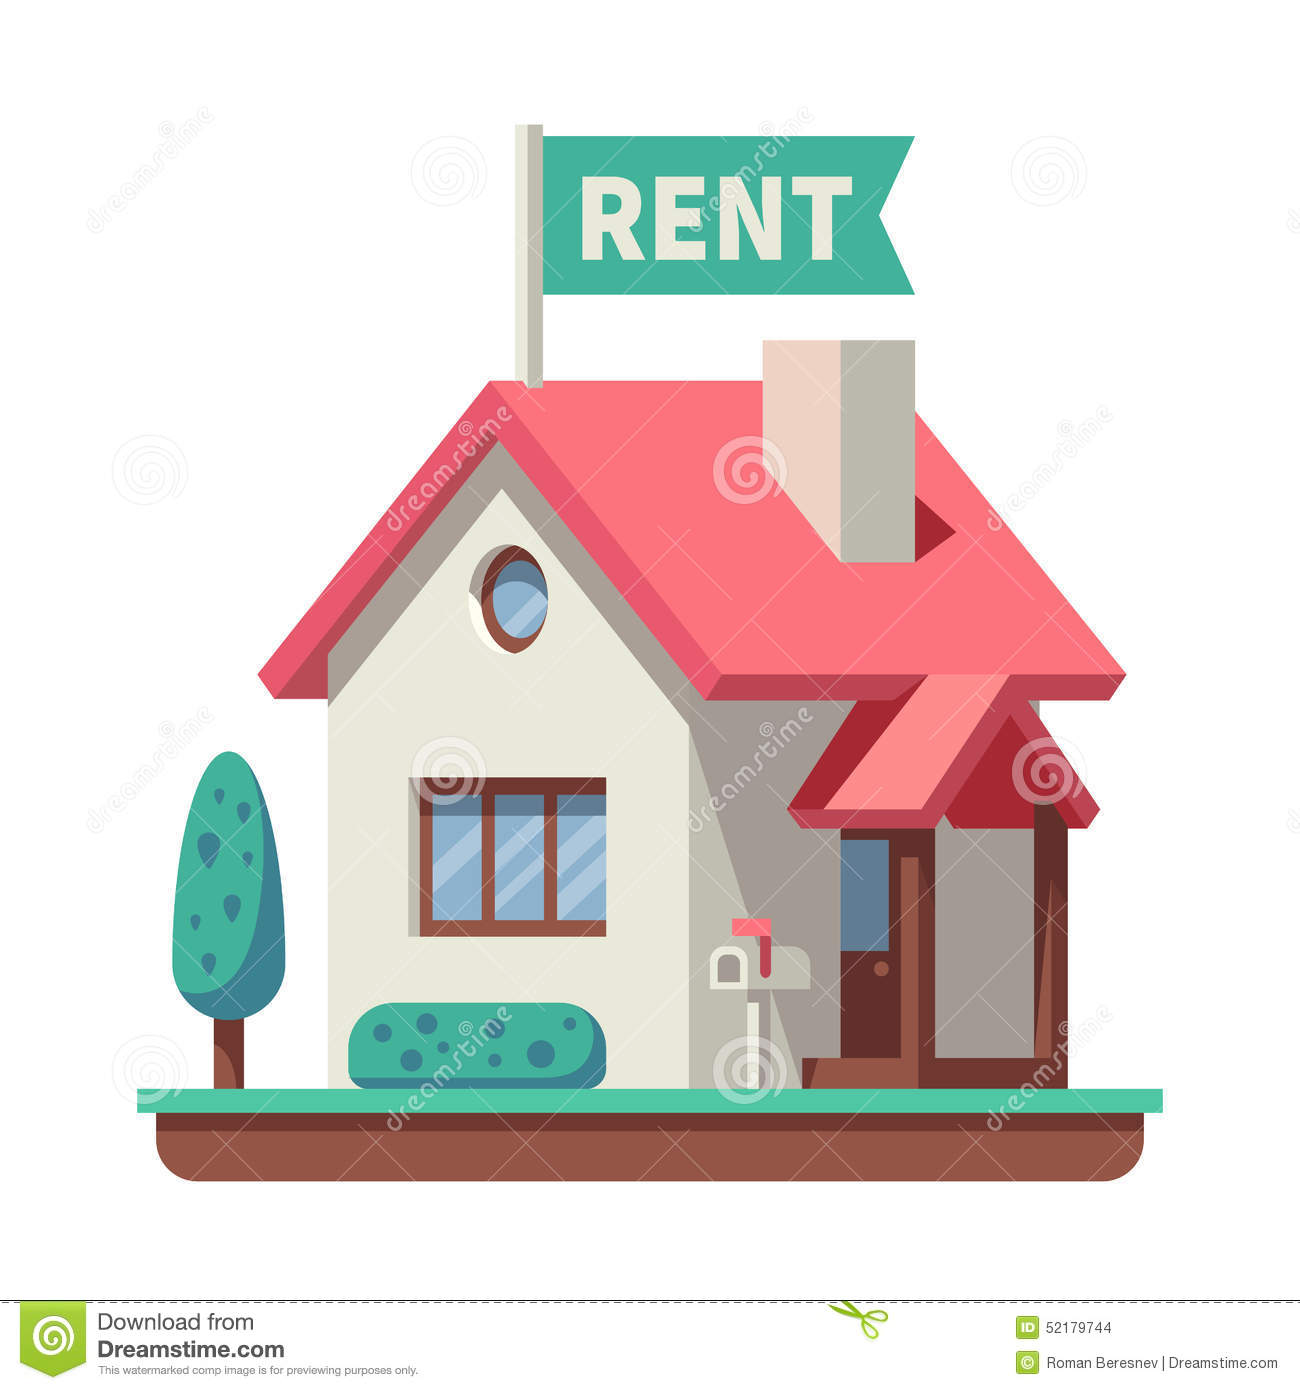 Rent Apt: House For Rent Stock Vector. Image Of Graphic, Element